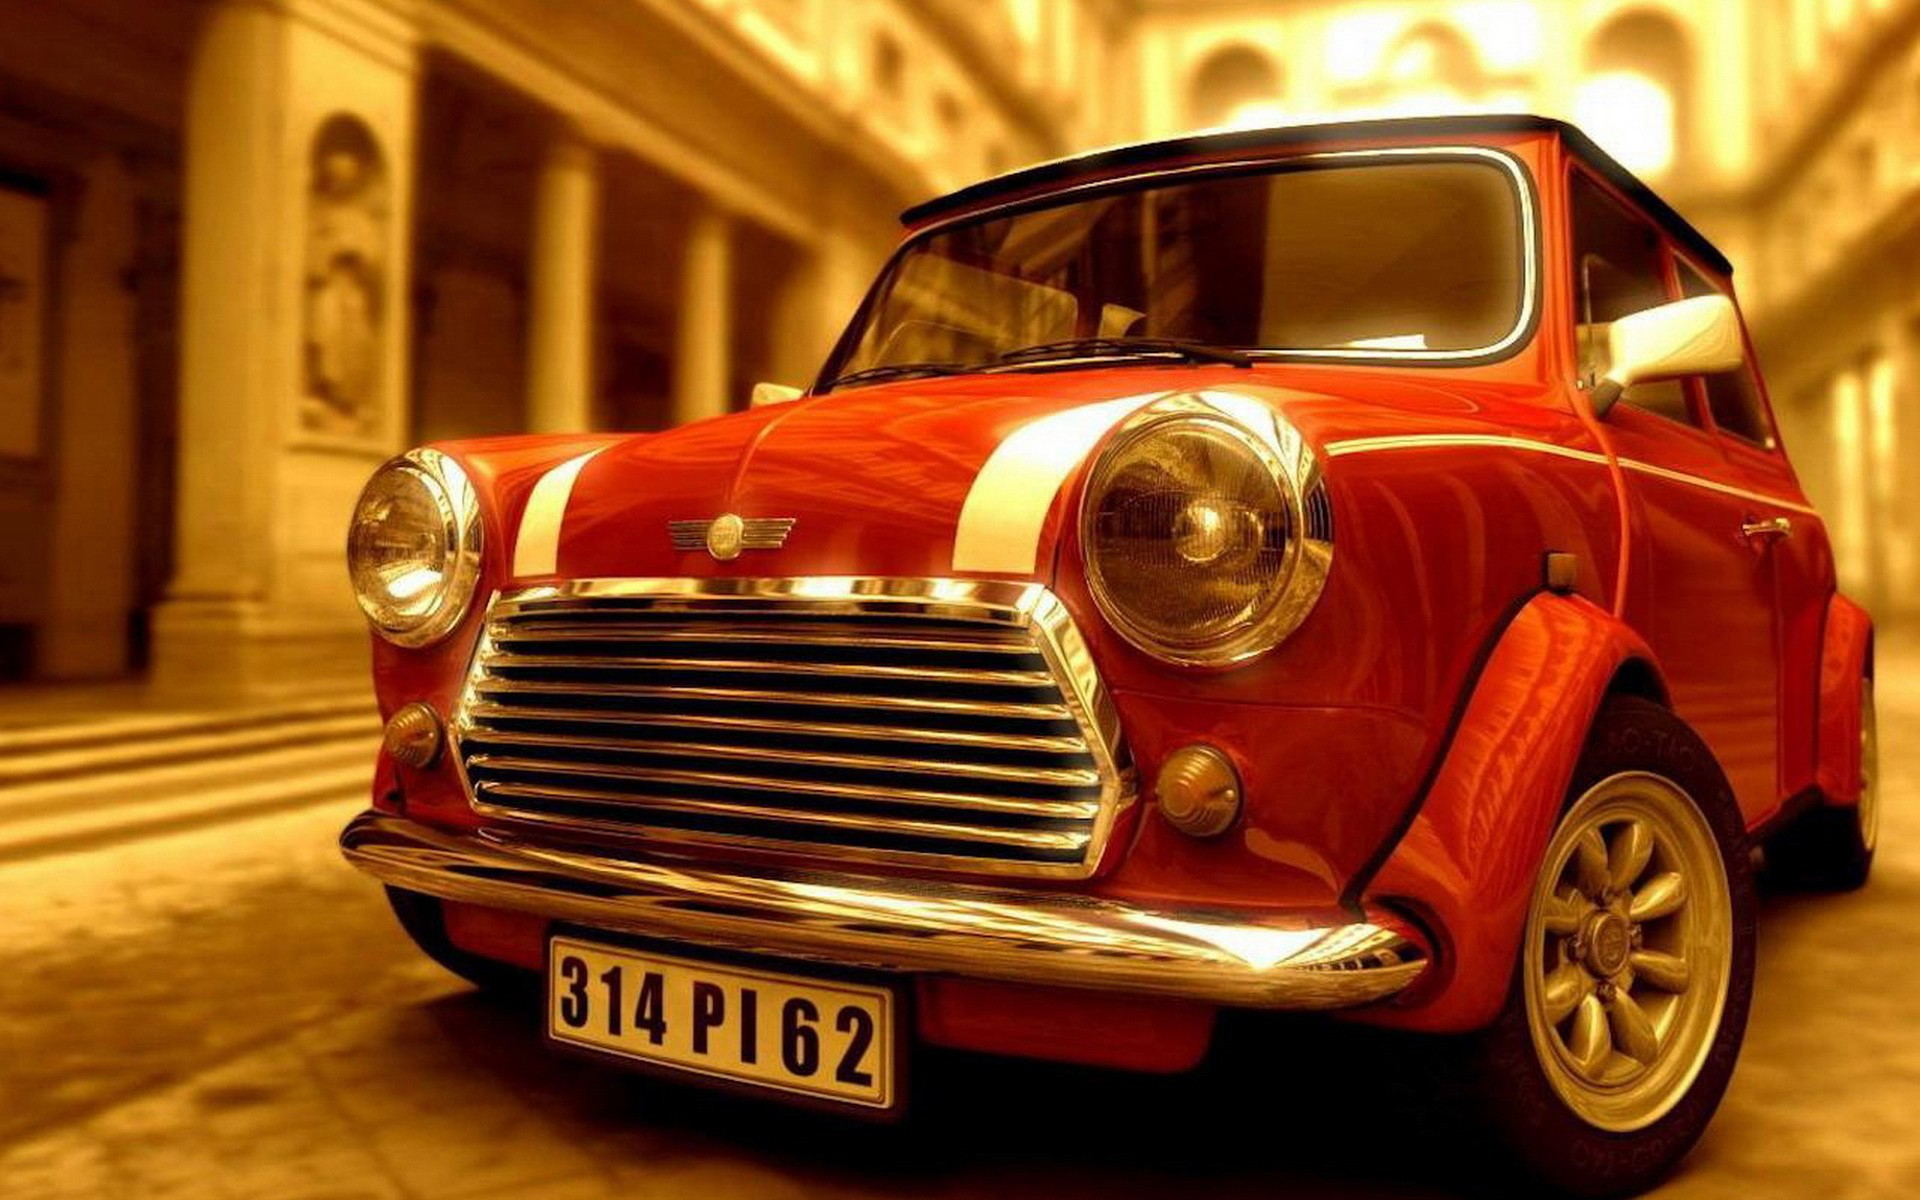 Classic Old Car Wallpapers 1600x900 Mini Cooper Full Hd Wallpaper And Background Image